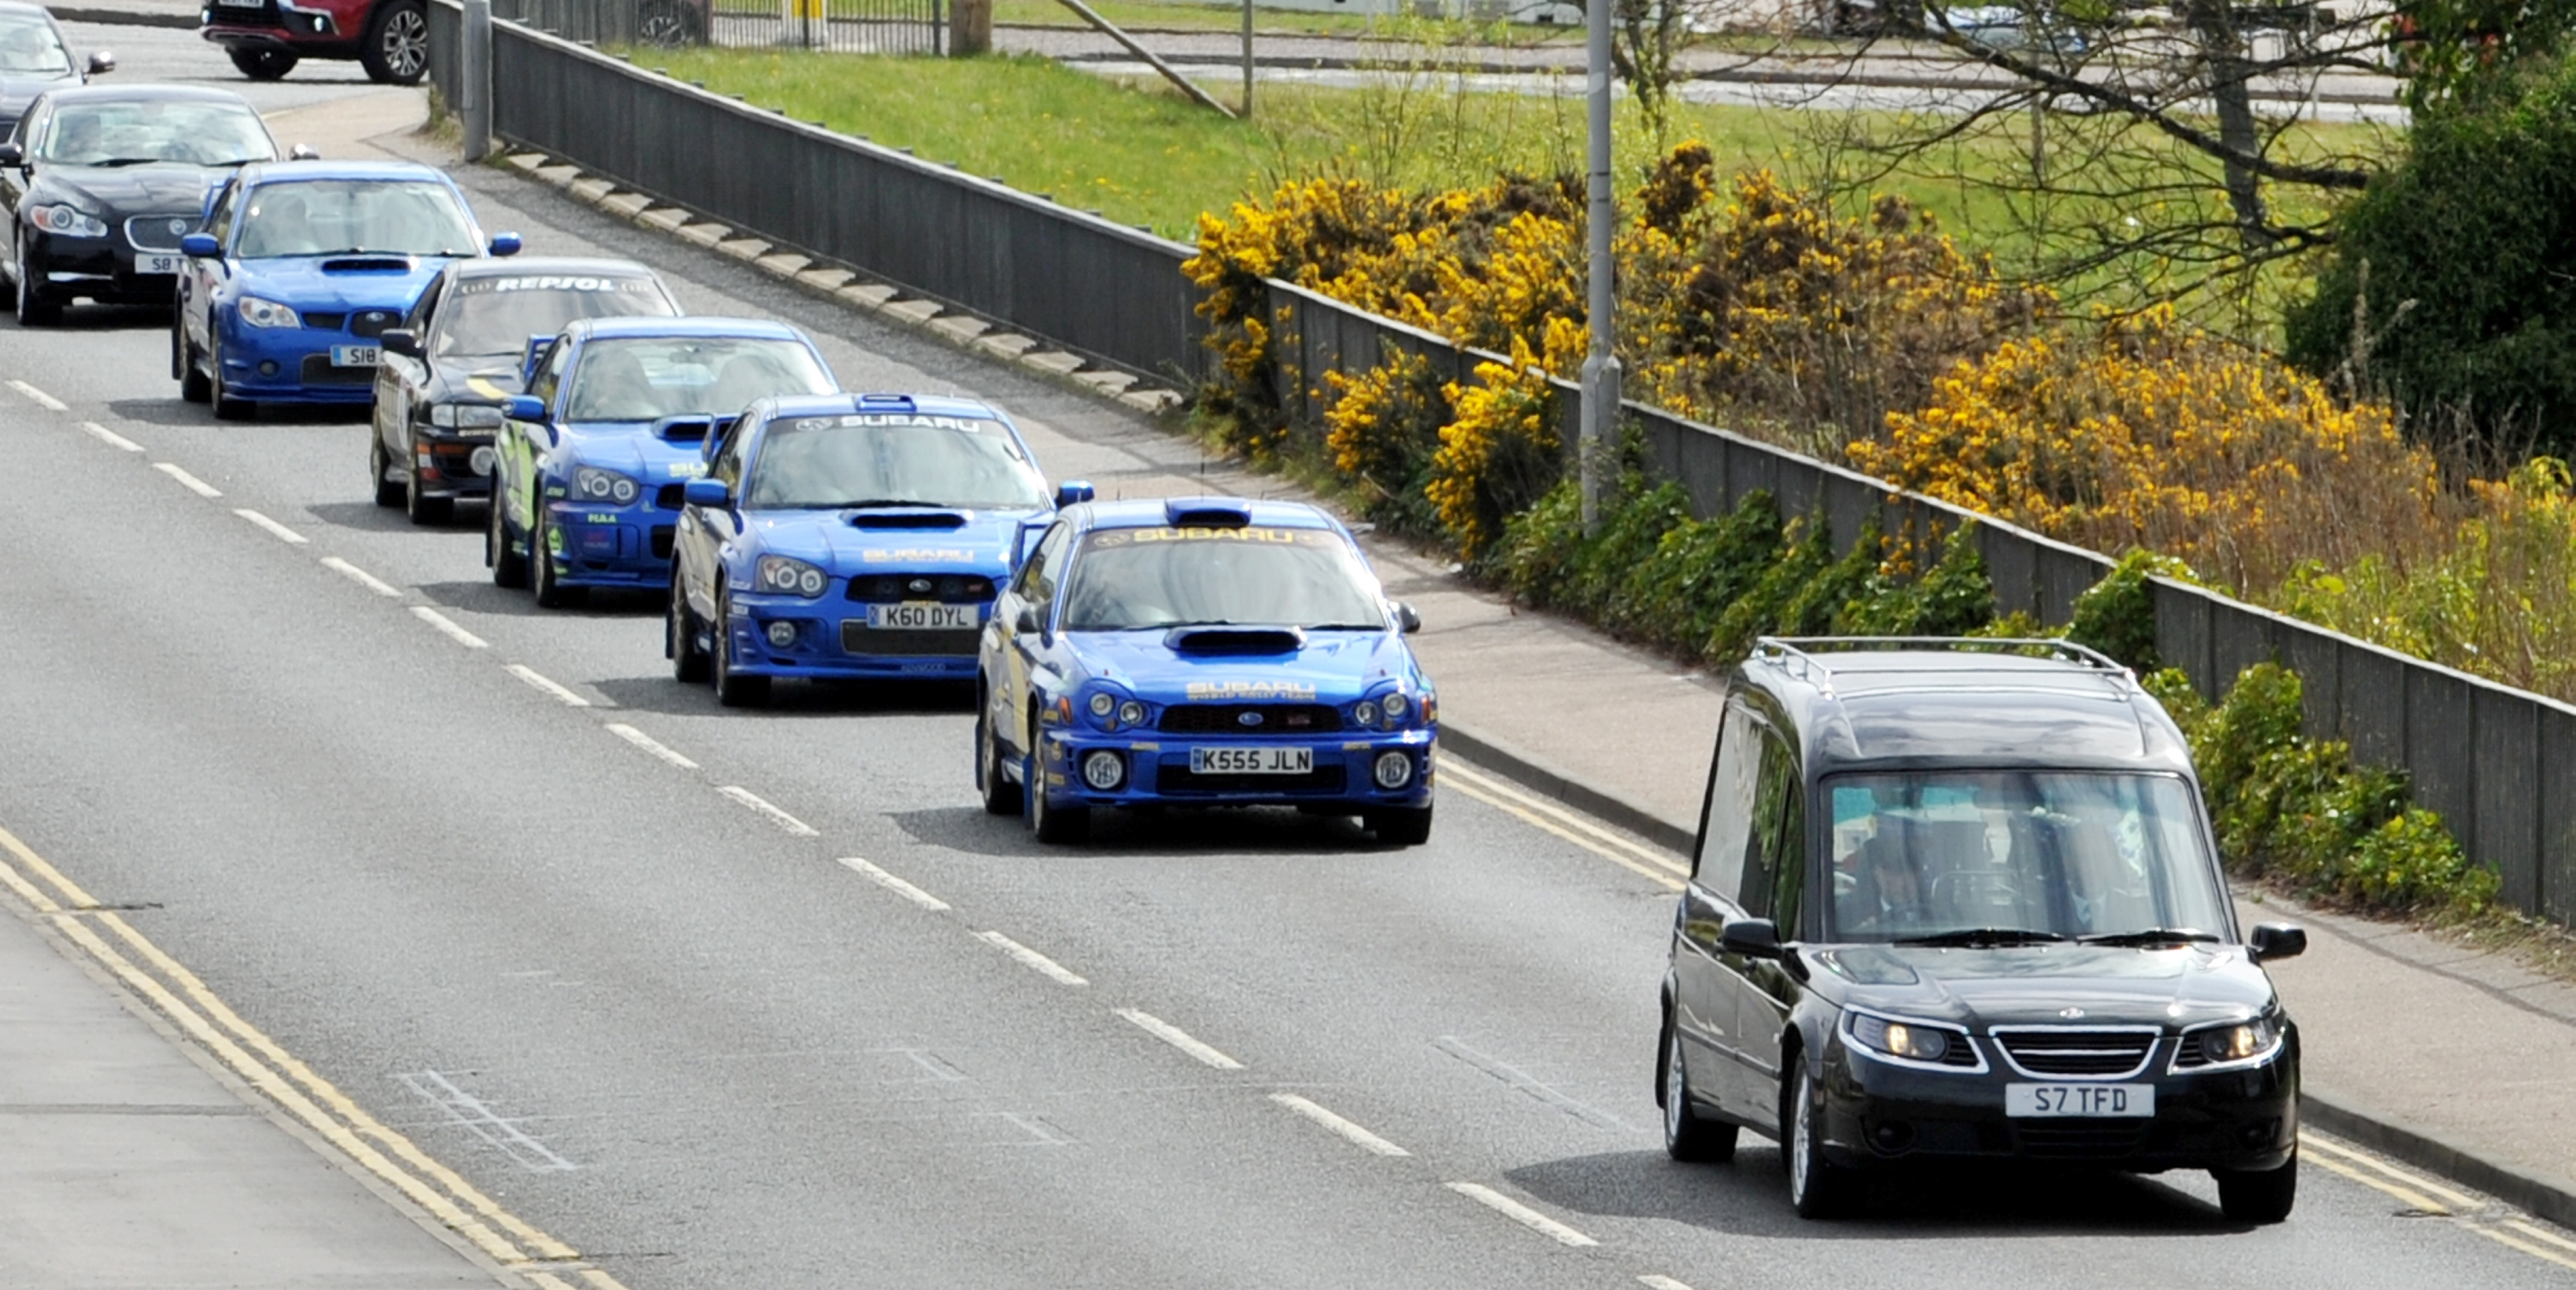 Funeral cortege for Kieran McQuillan, led by hearse and Subaru cars from Elgin Town Hall to Lossiemouth cemetery.